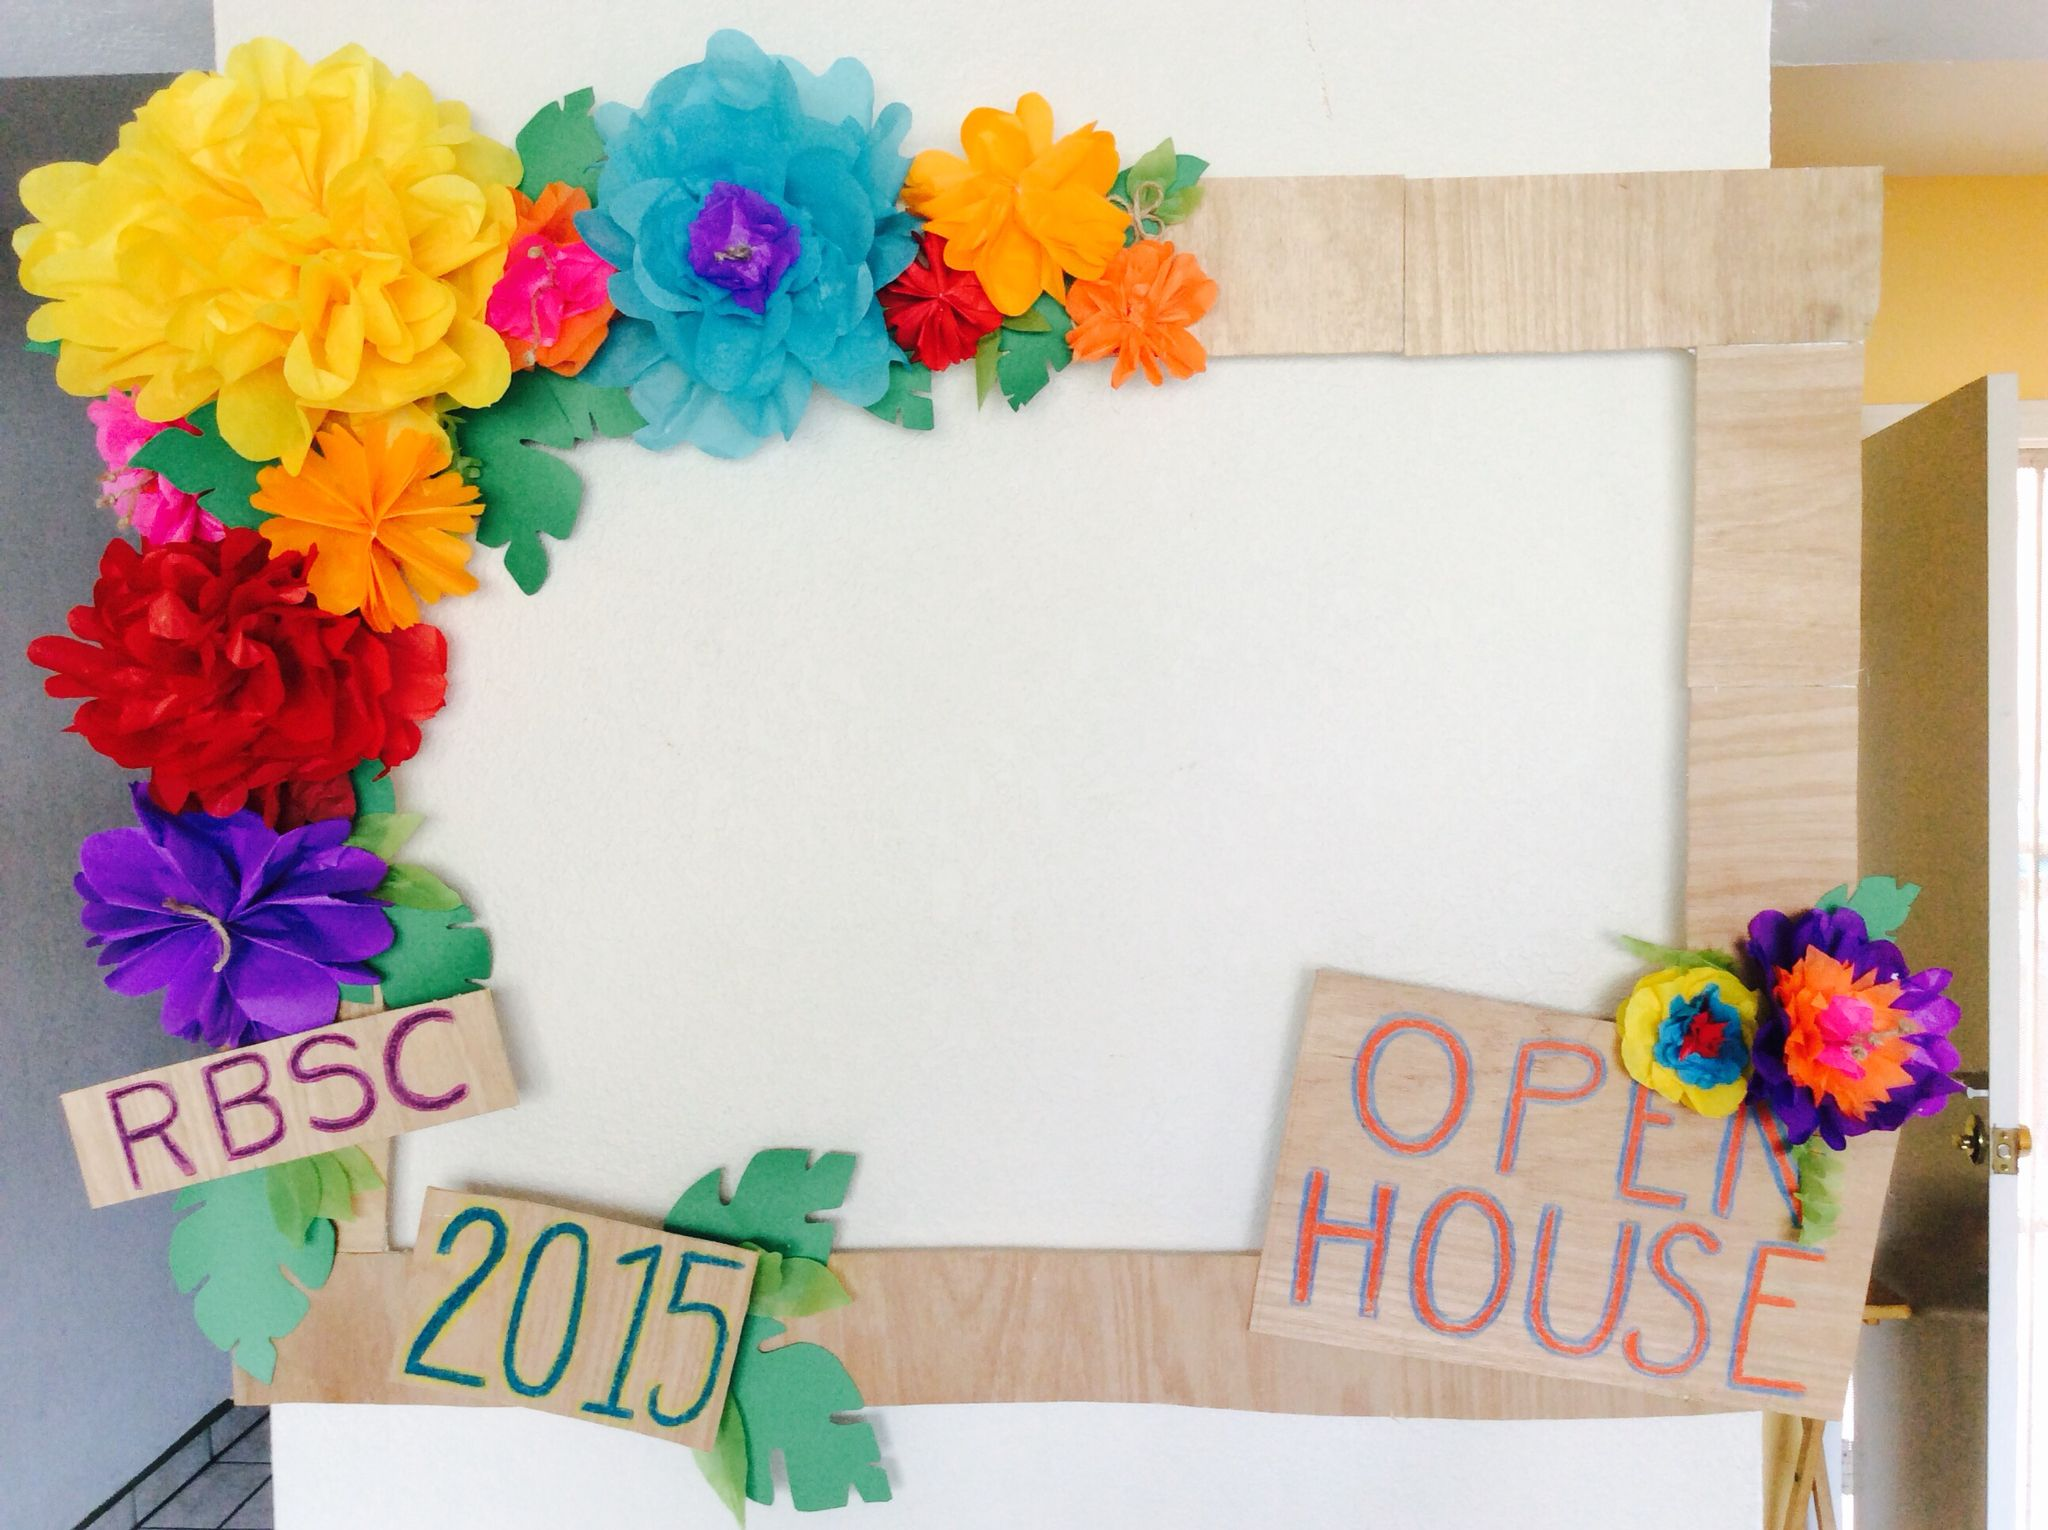 Gigant frame photobooth hawaii party paper flower hand made | just ...